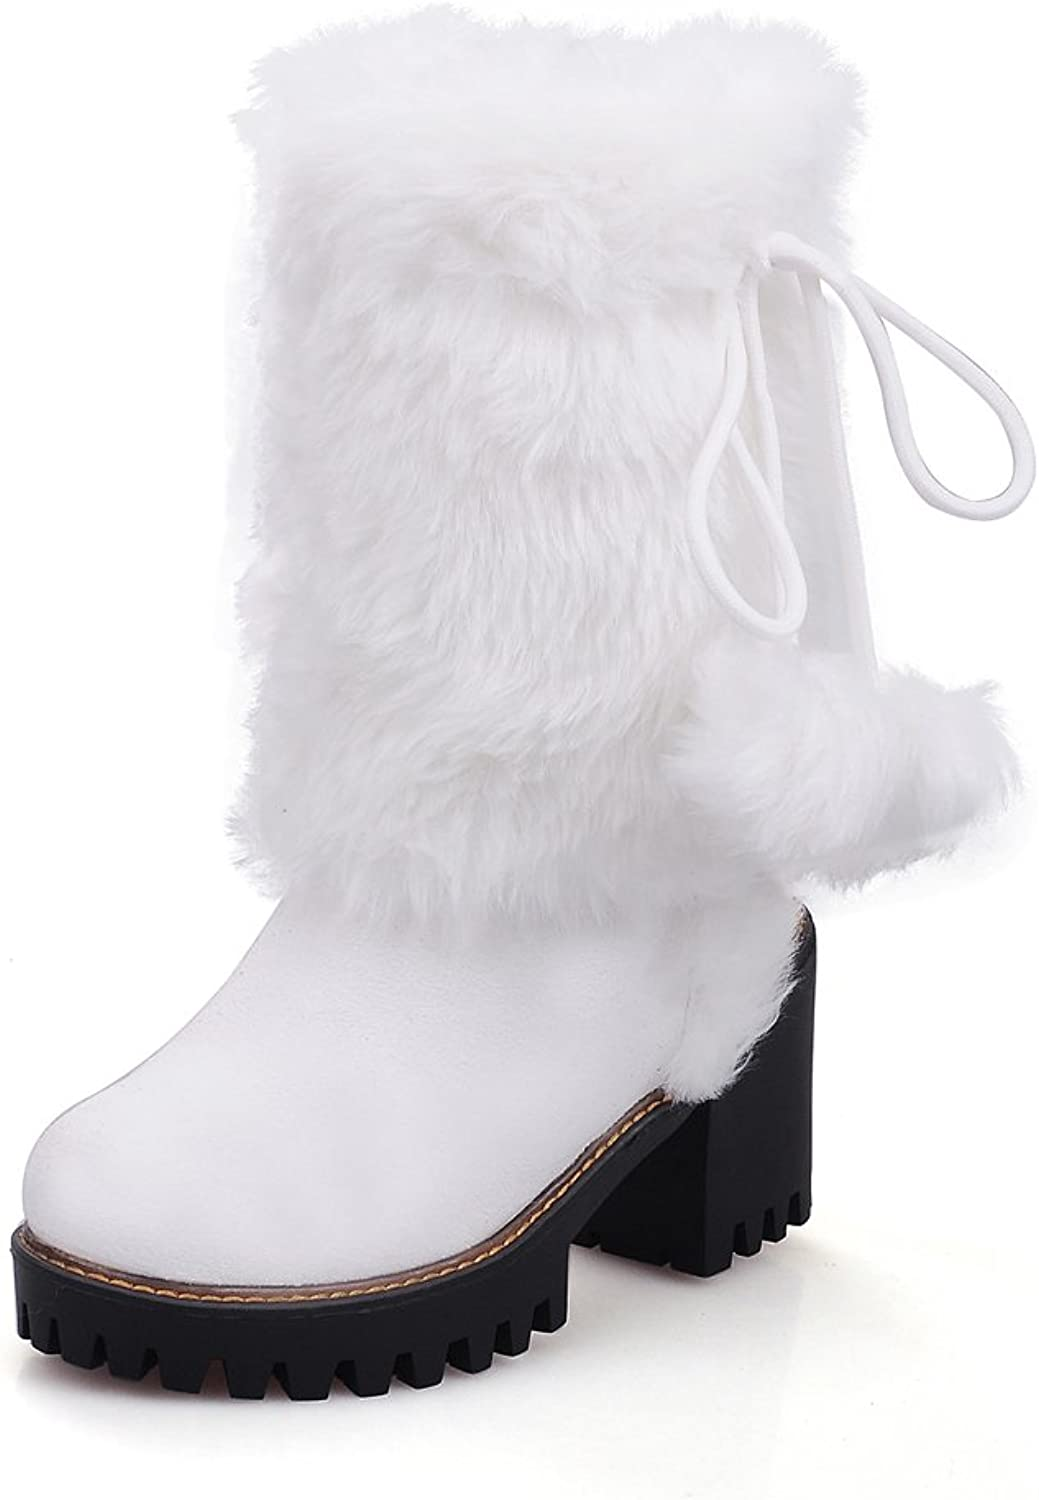 Lucksender Womens Round Toe Faux Fur Bowkont Mid-calf Snow Boots